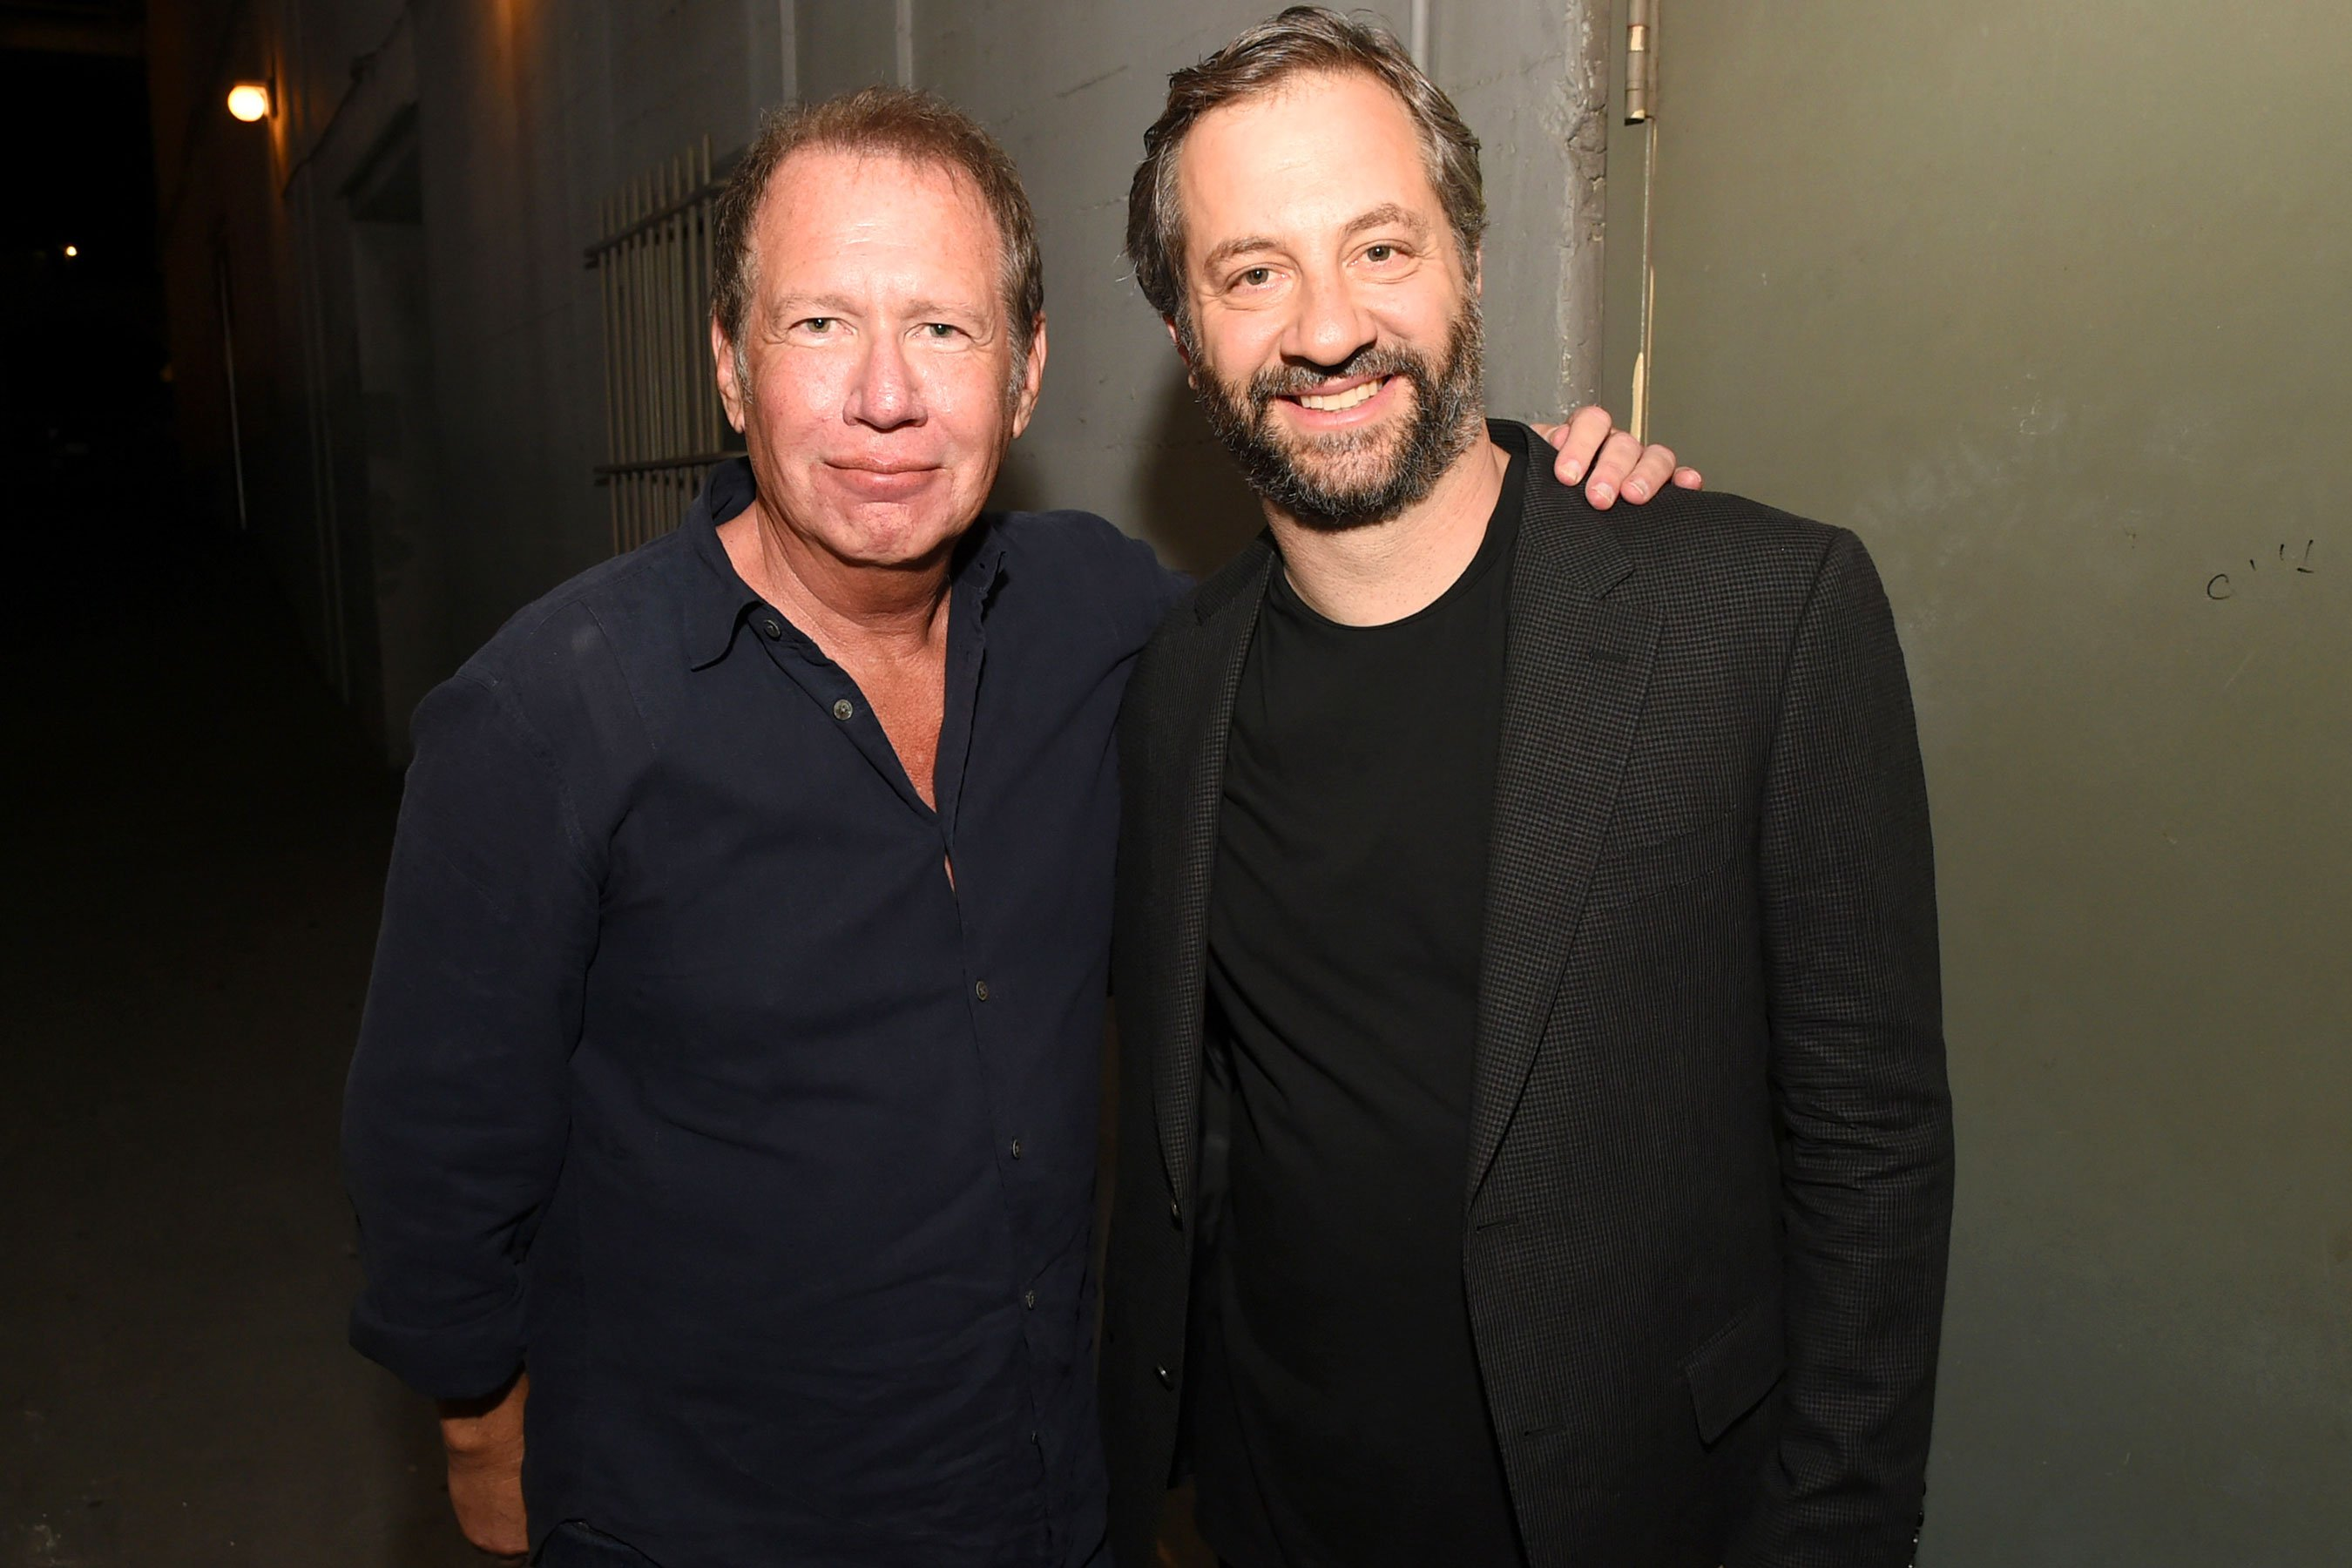 HBO to air Judd Apatow's Garry Shandling documentary in March